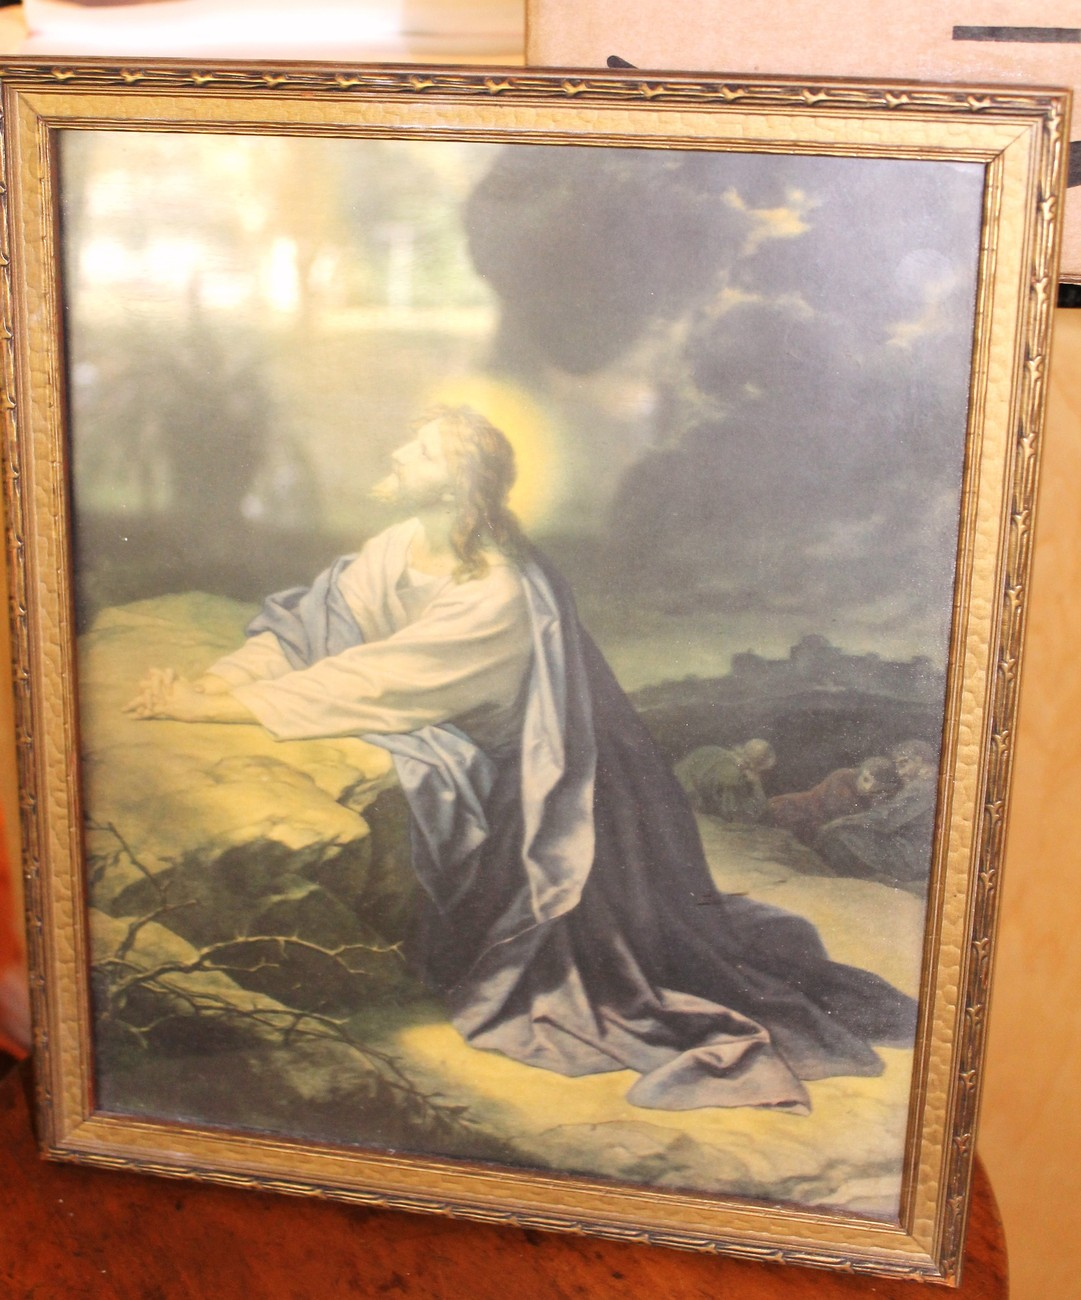 Vintage Framed Print of Jesus praying in the Garden of Gethsemane